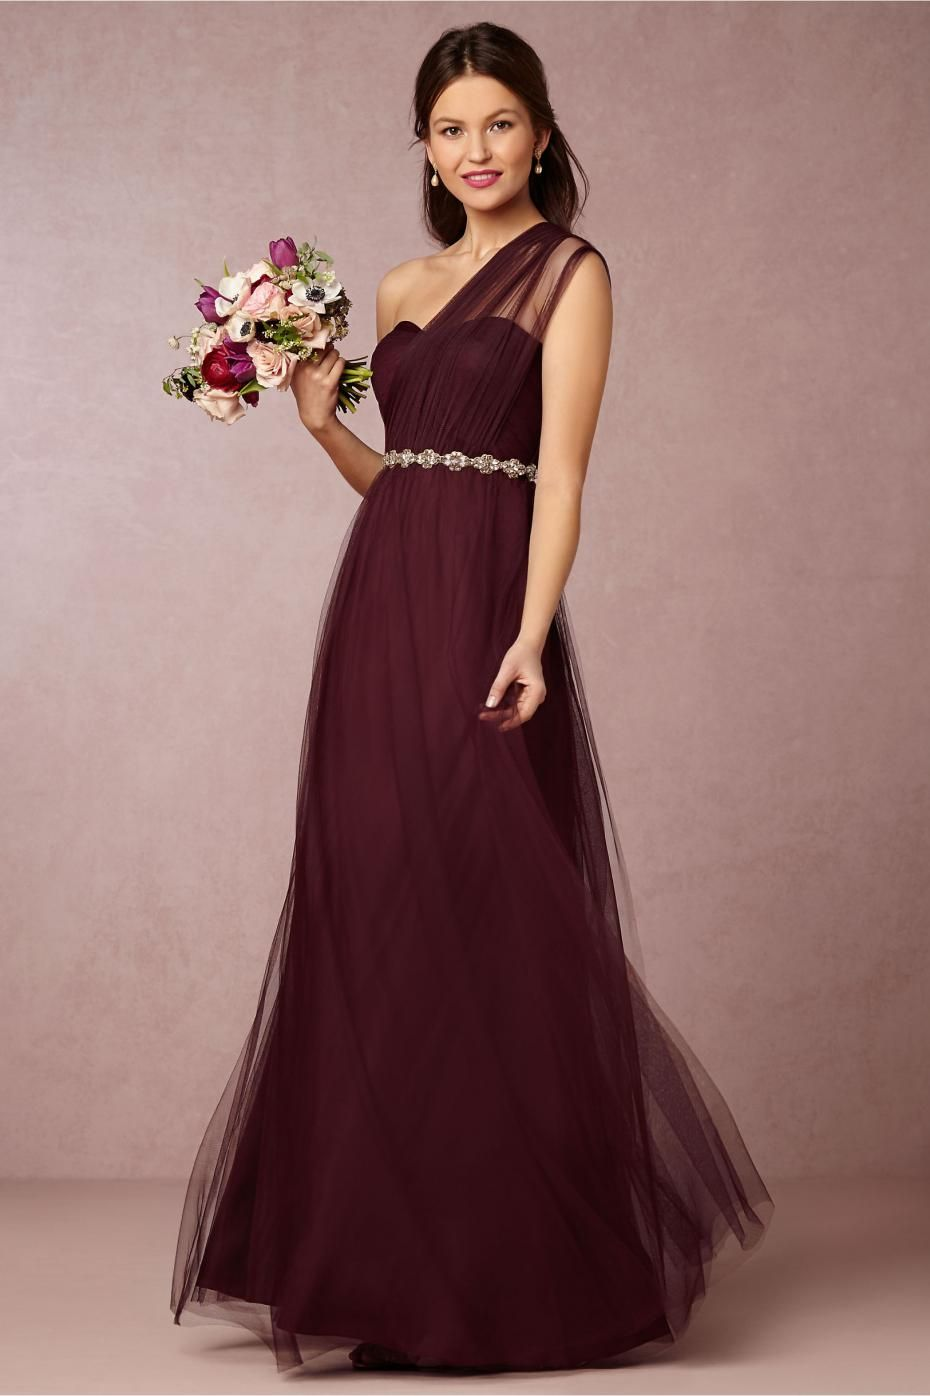 Cheap dress patterns evening gowns buy quality dress pants for buy burgundy bridesmaid dresses 2015 summer style sleeveless backless shining sash aline floor length long bridesmaid dresses cheap from reliable dress ombrellifo Image collections